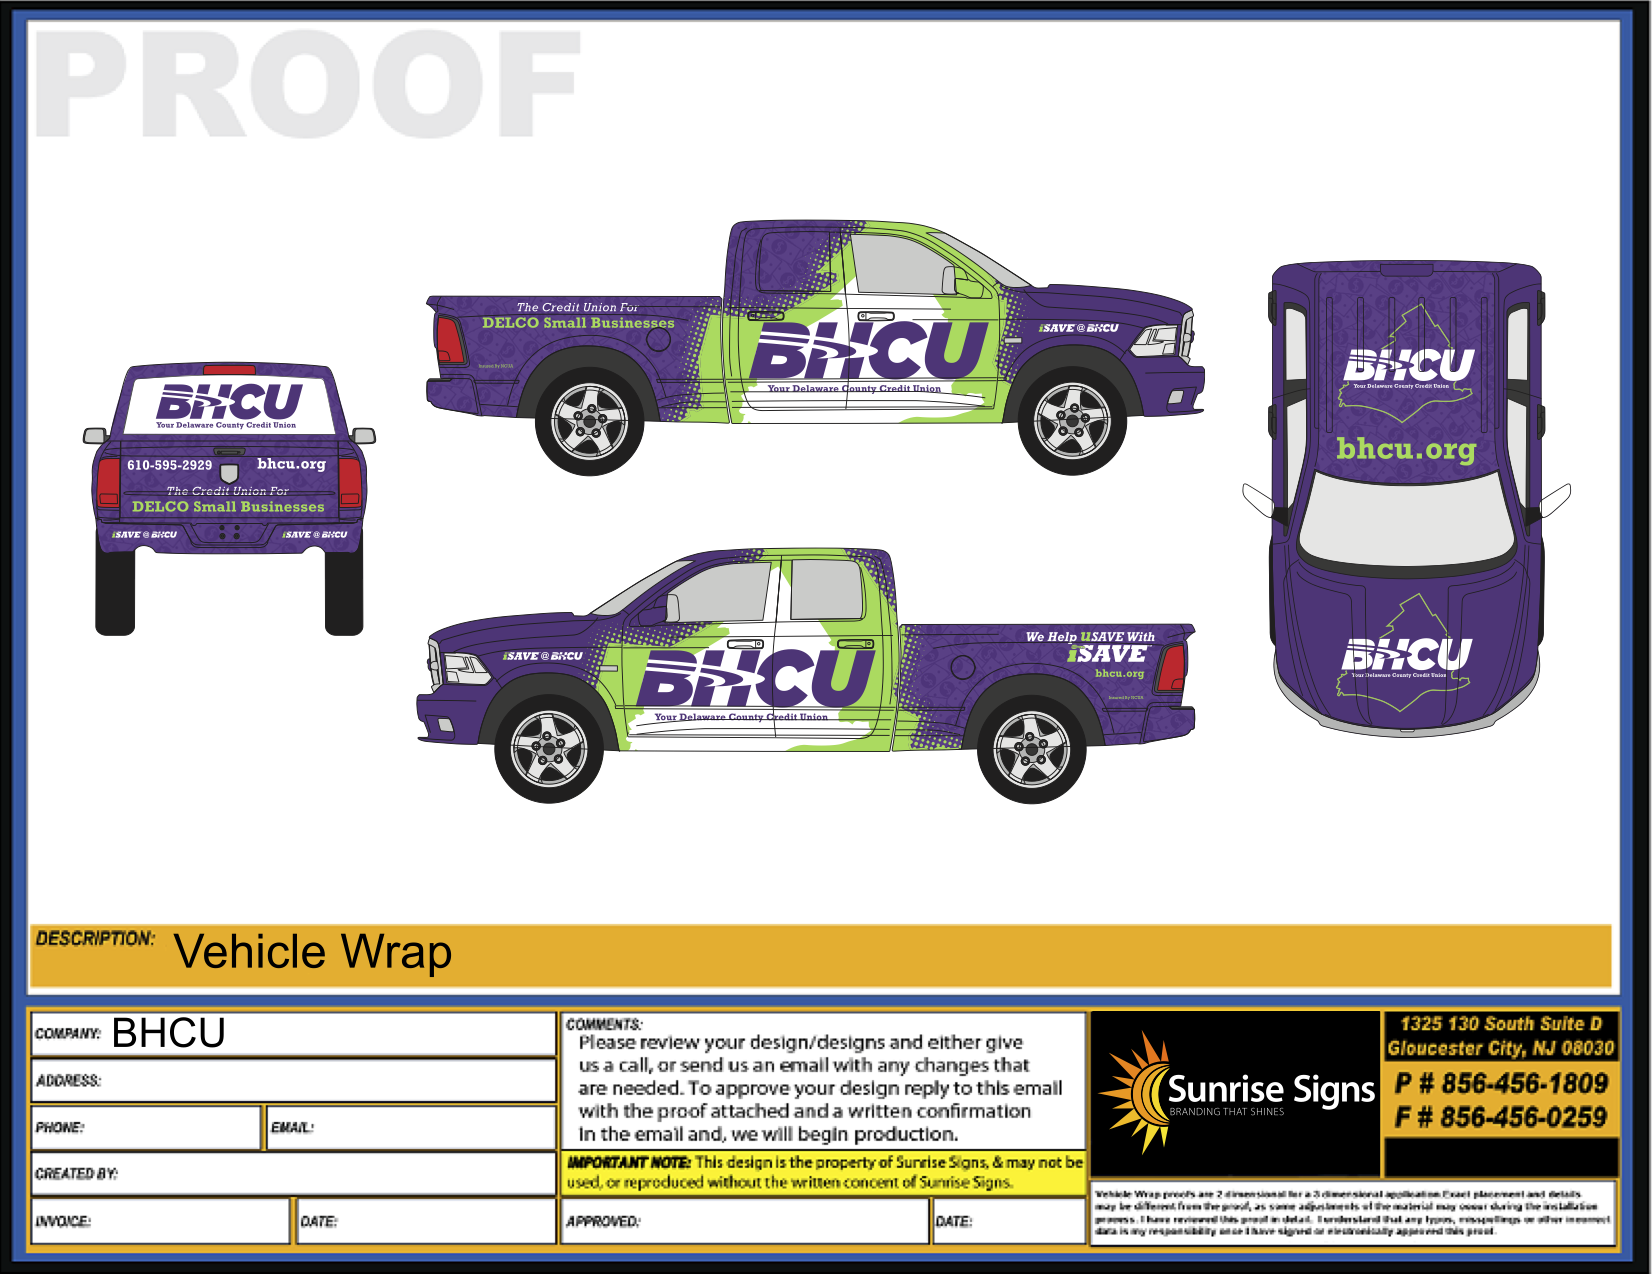 Philadelphia Vehicle Wrap Design